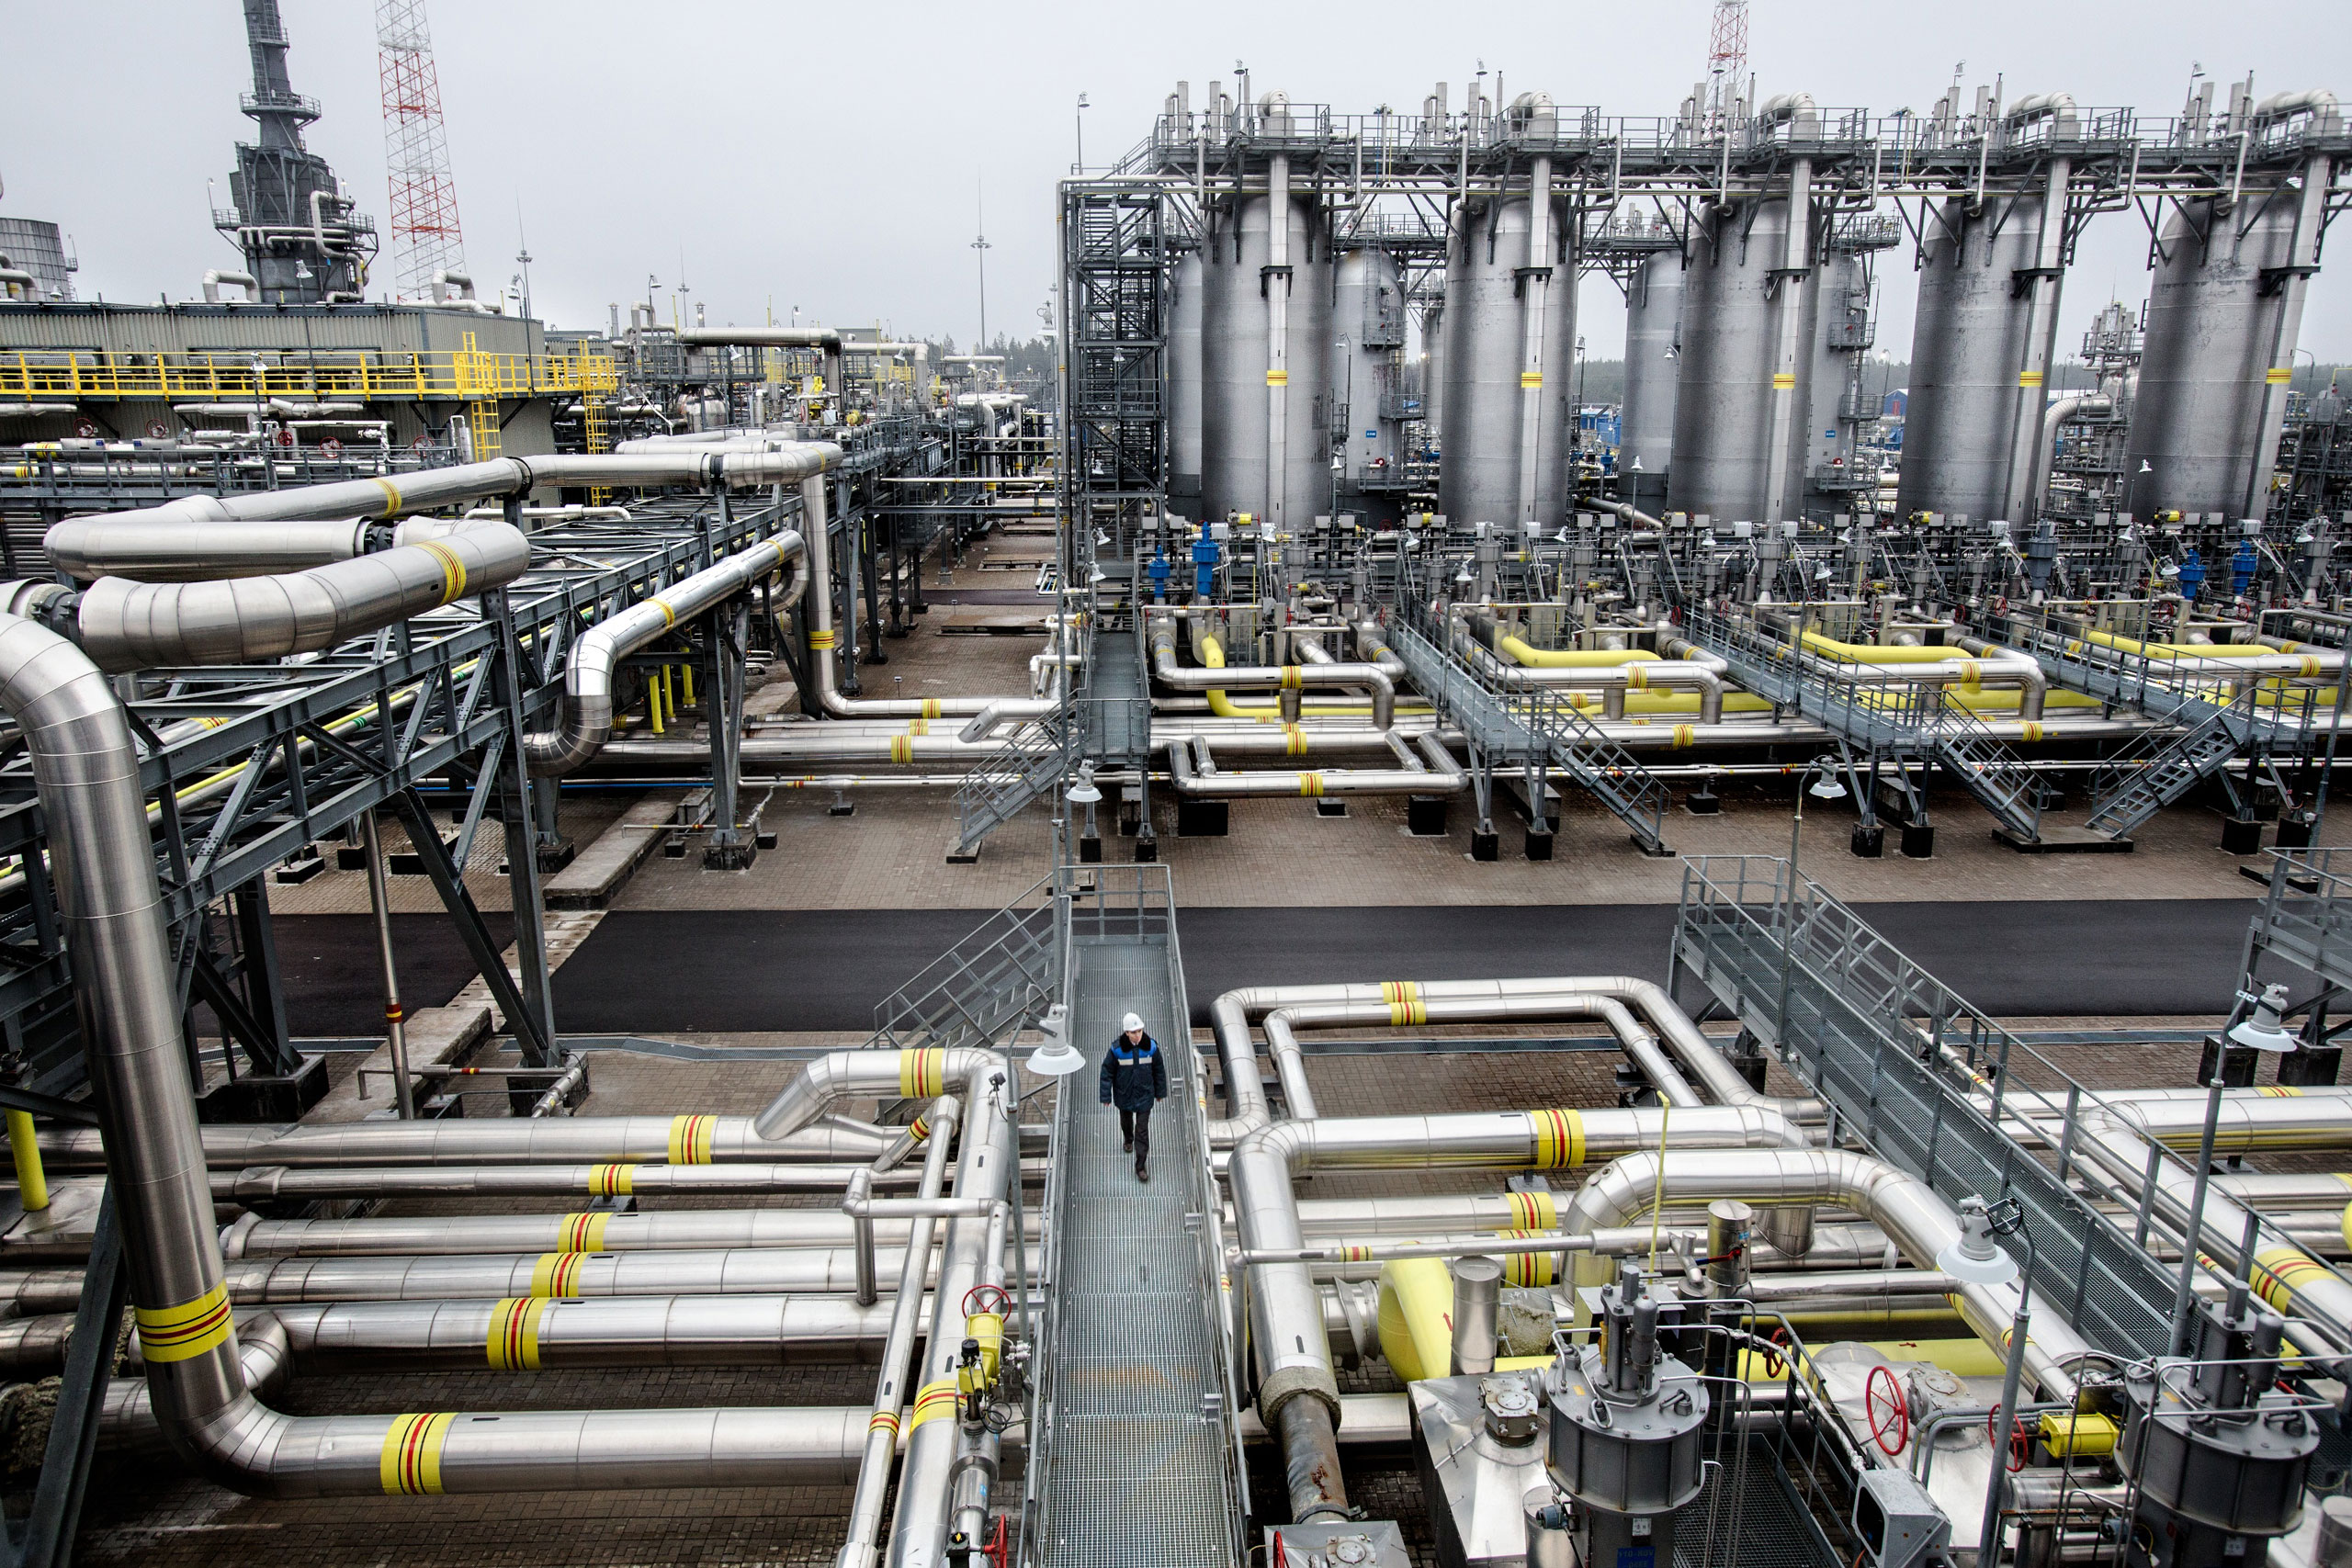 The Portovaya compressor station where Russian gas is condensed before it is piped across the Baltic Sea bed to supply energy to Europe. With sanctions over Russia's incursion into Ukraine and tumbling world energy prices, Russia's economy has slowed, November 2014.